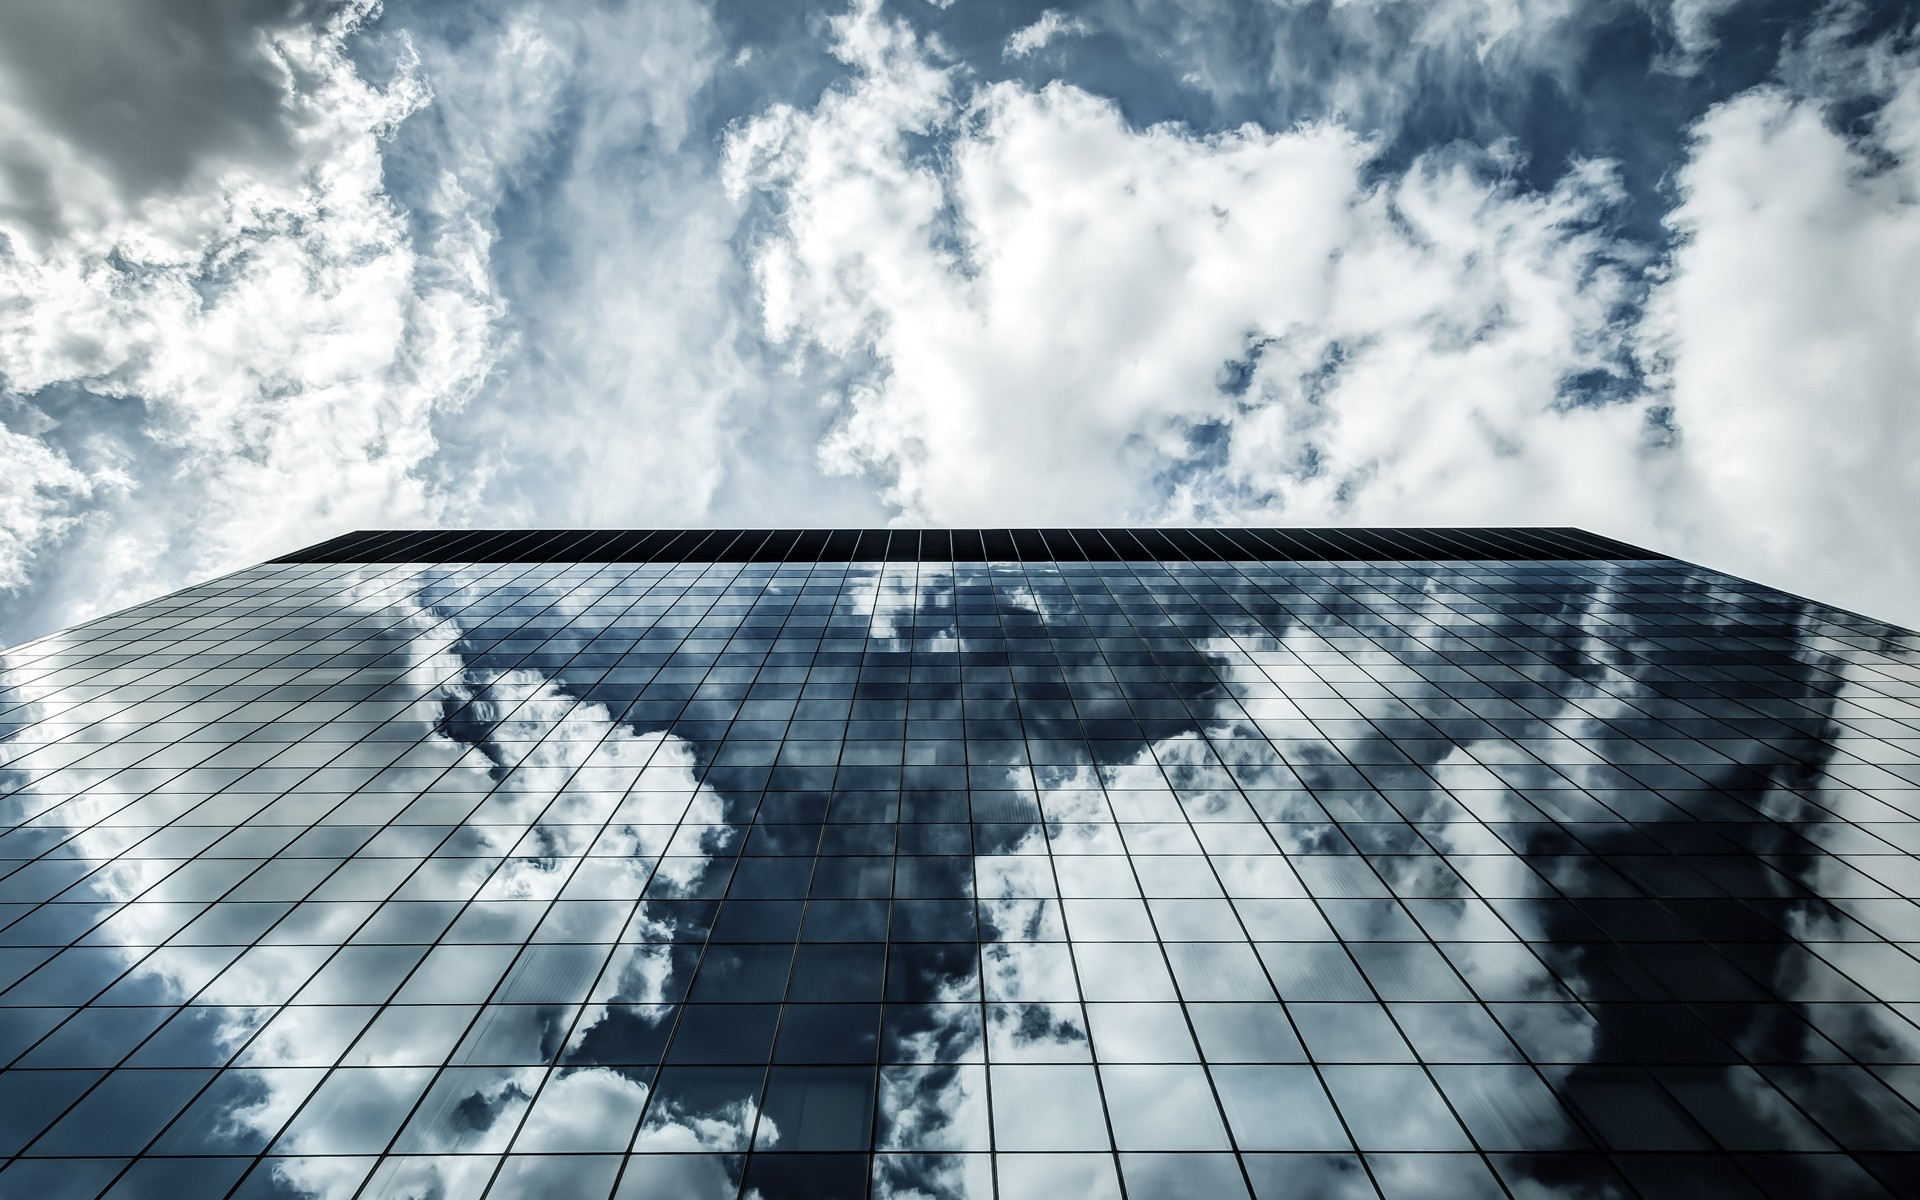 clouds_architecture_houses_glasses_window_buildings_skyscrapers_reflections_blue_skies_Wallpaper_1920x1200_www.wall321.com_